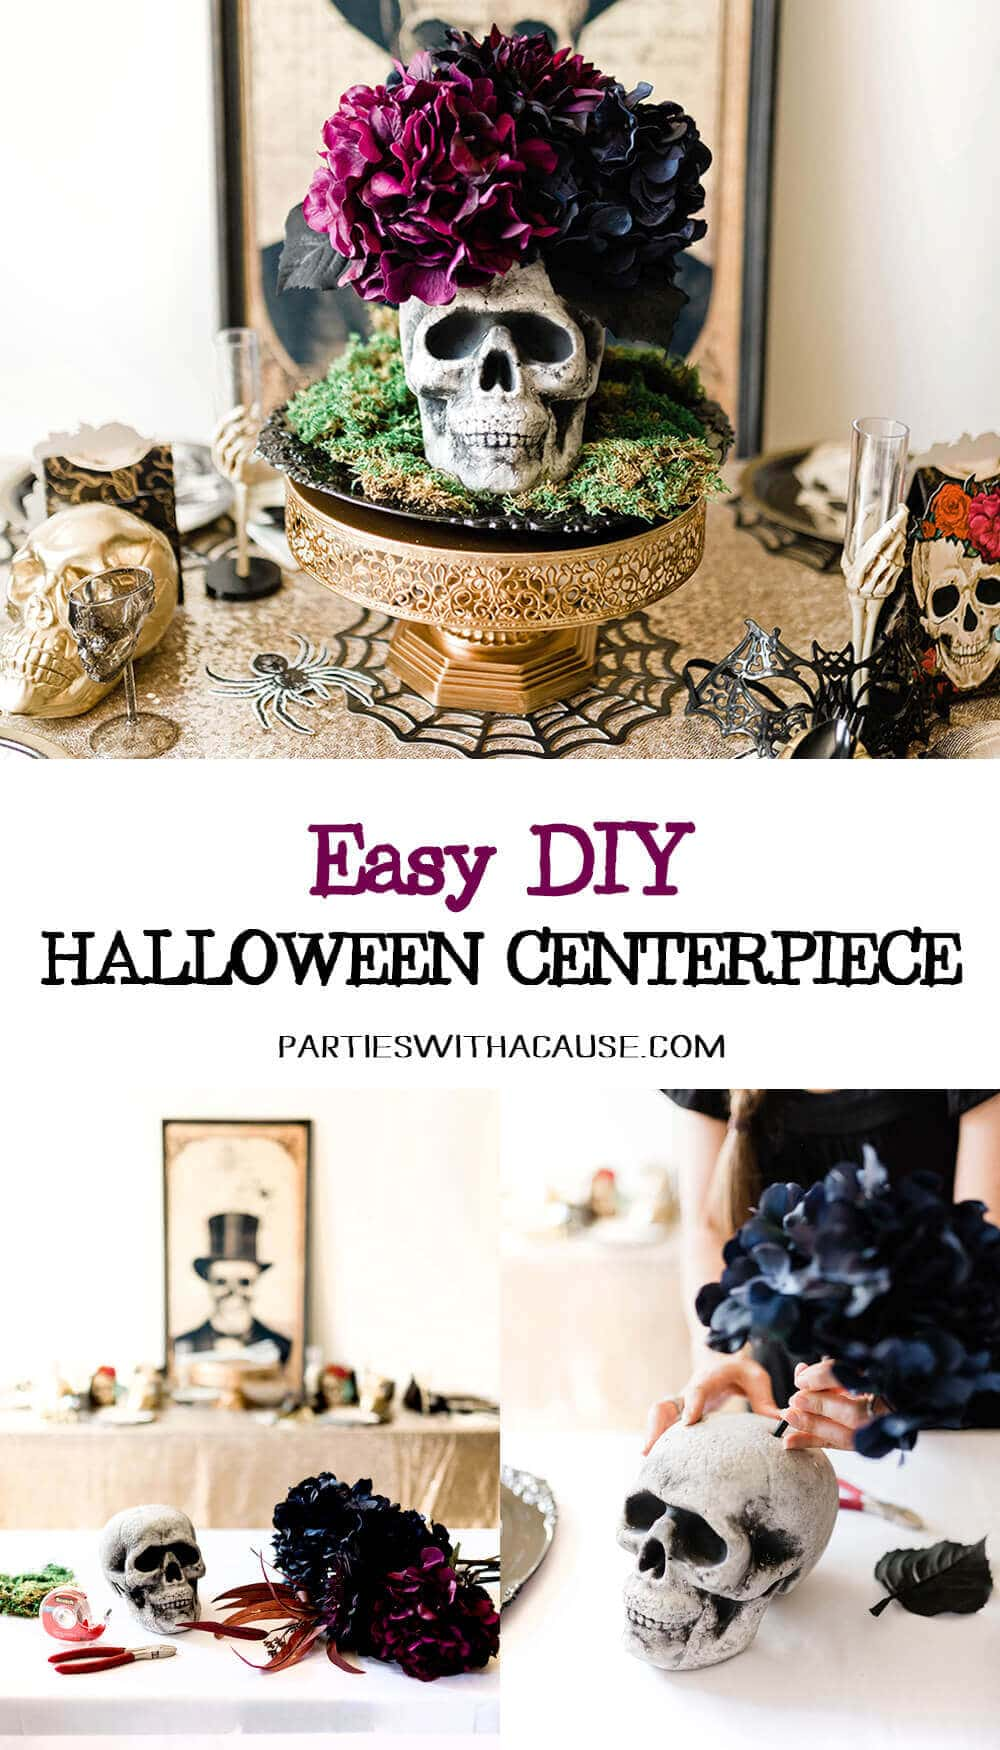 Easy DIY Floral Skull Centerpiece Tutorial